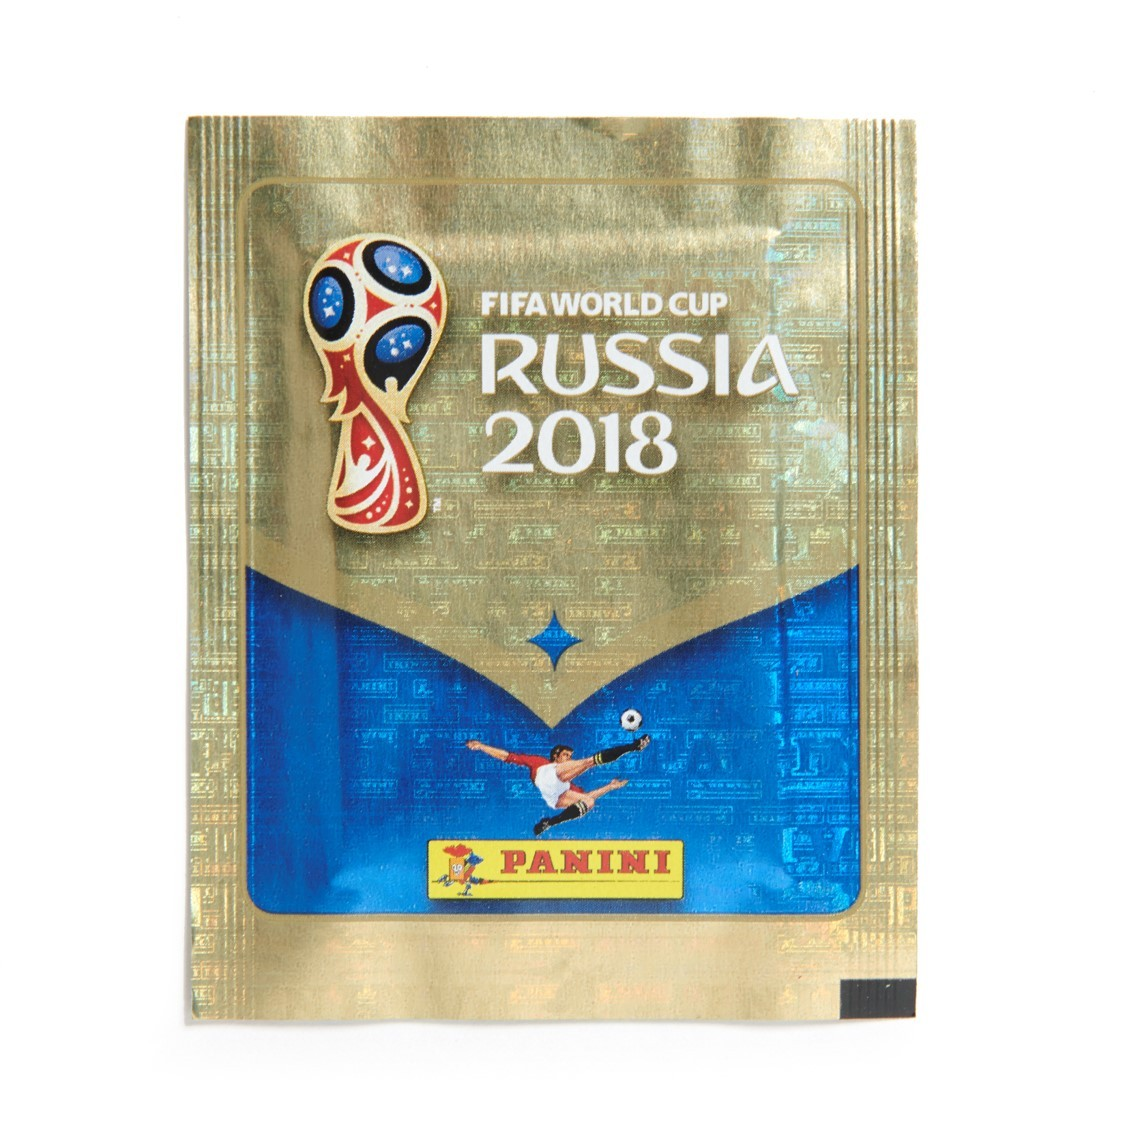 Pochette de 5 stickers world cup 2018 russia panini